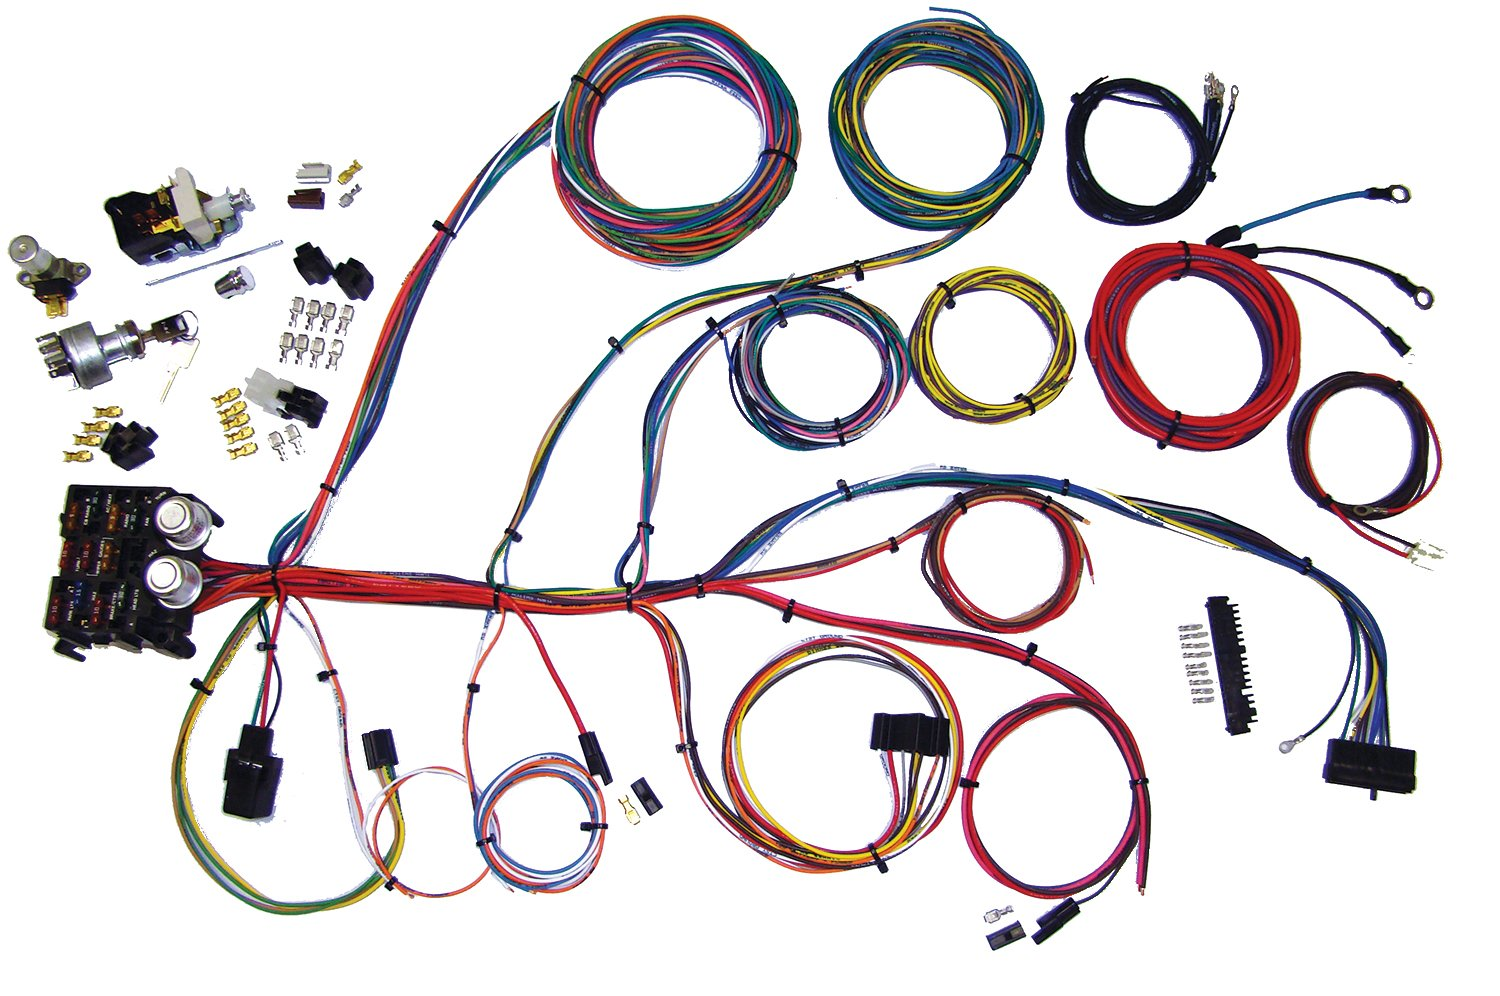 american autowire 510004 power plus 13 integrated fuse box system ...  online shopping in bermuda - desertcart